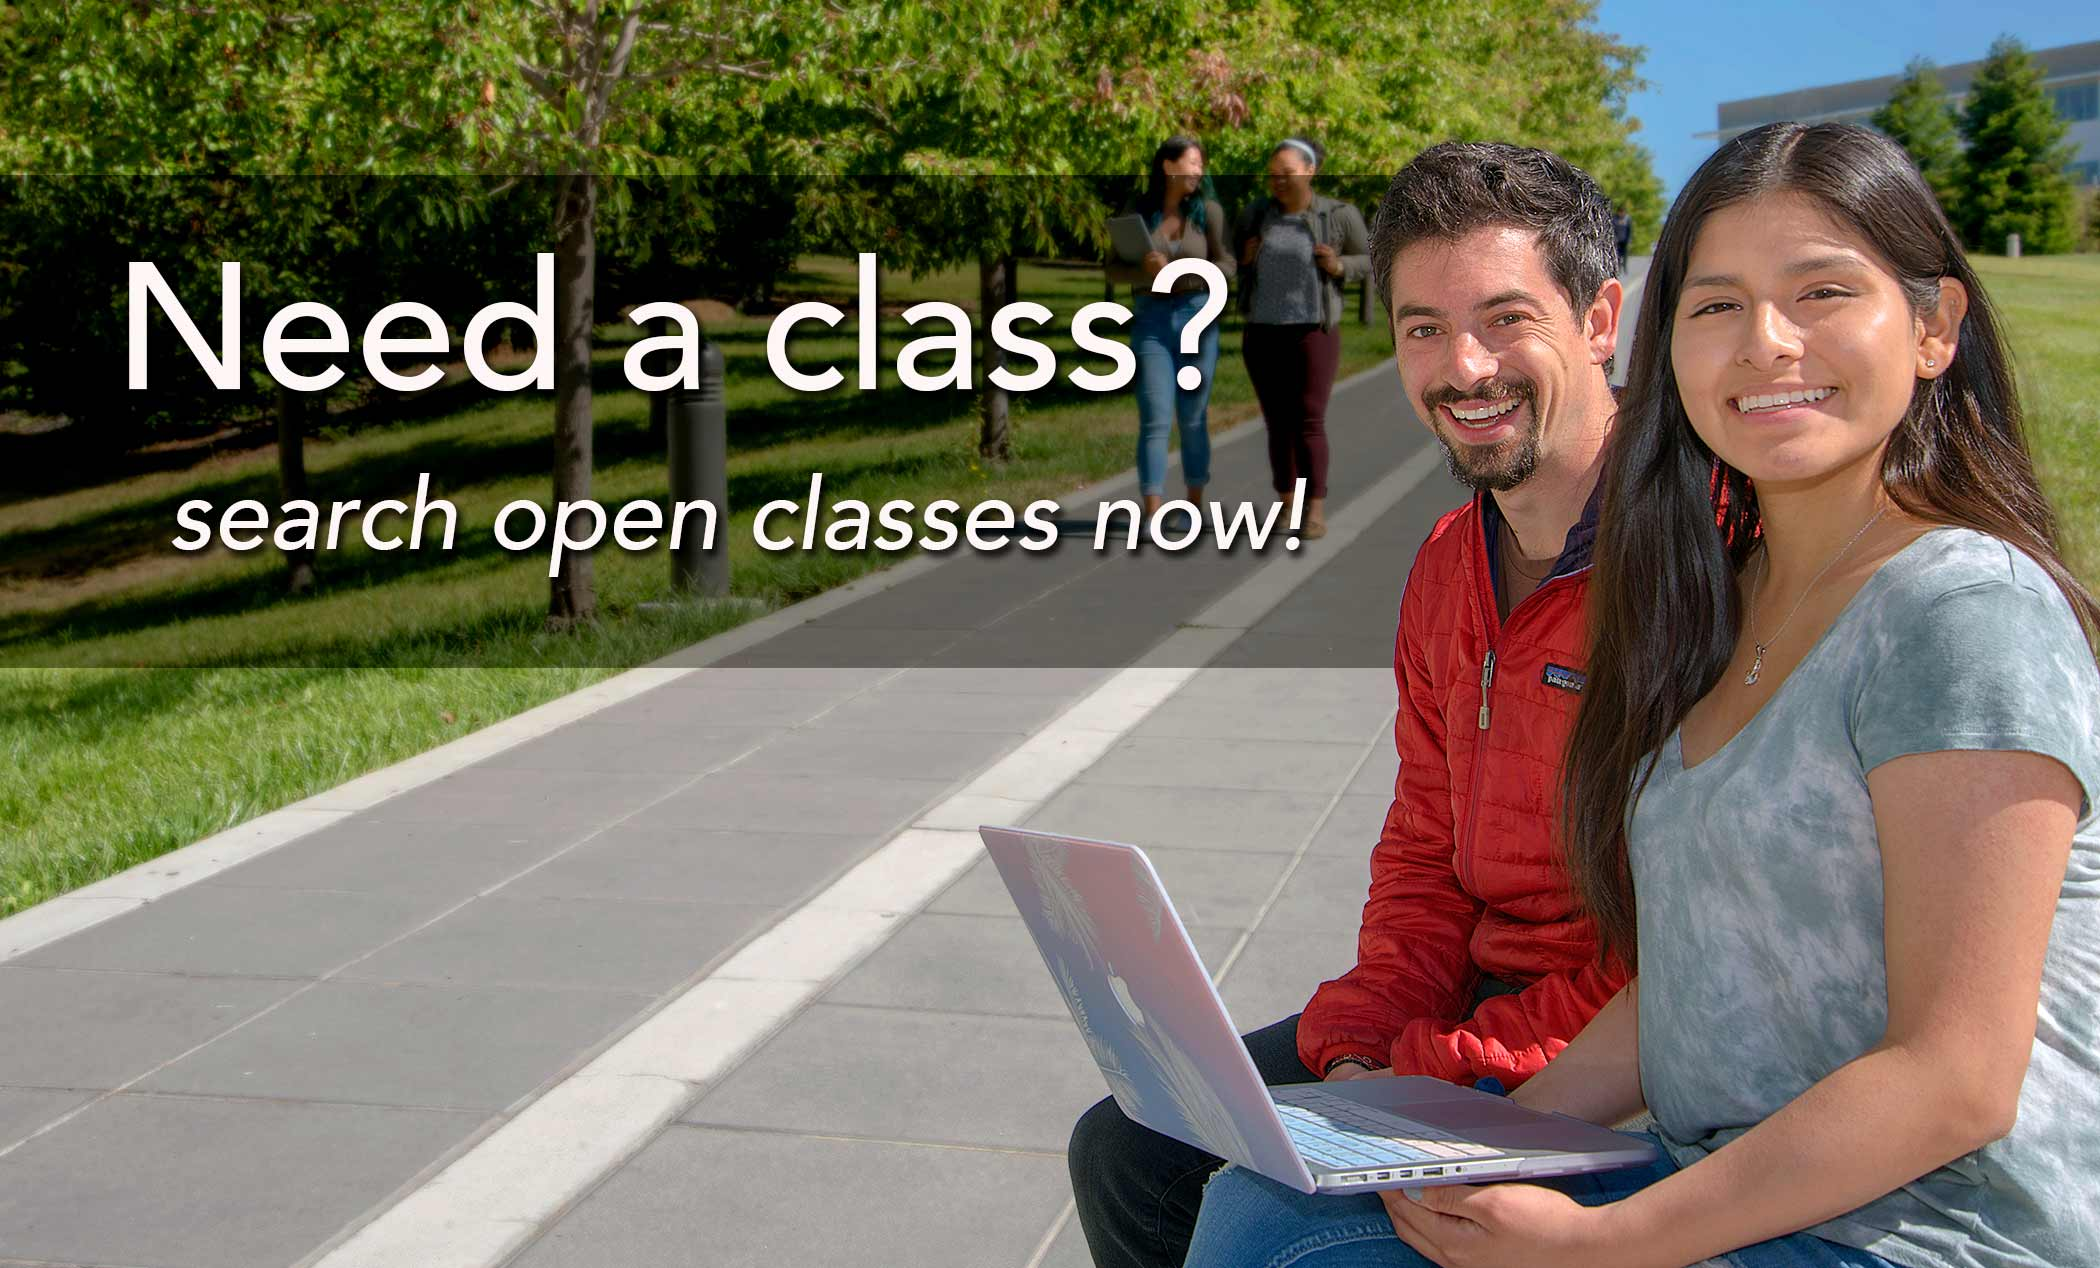 Need a class? Search open classes now!